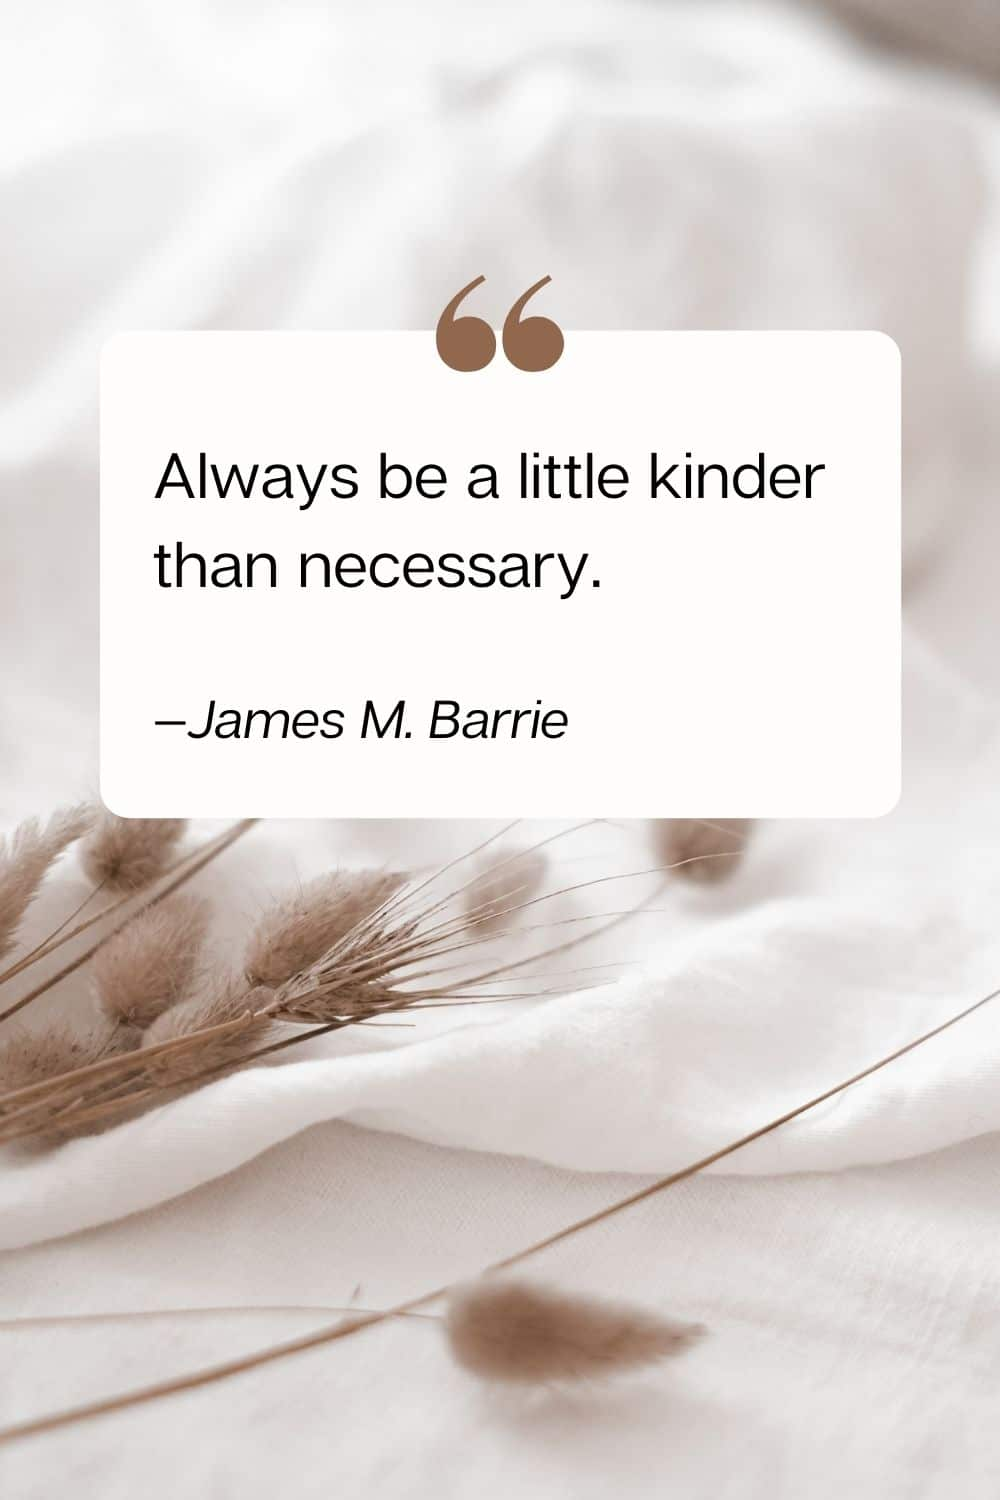 quote - Always be a little kinder than necessary. — James M. Barrie